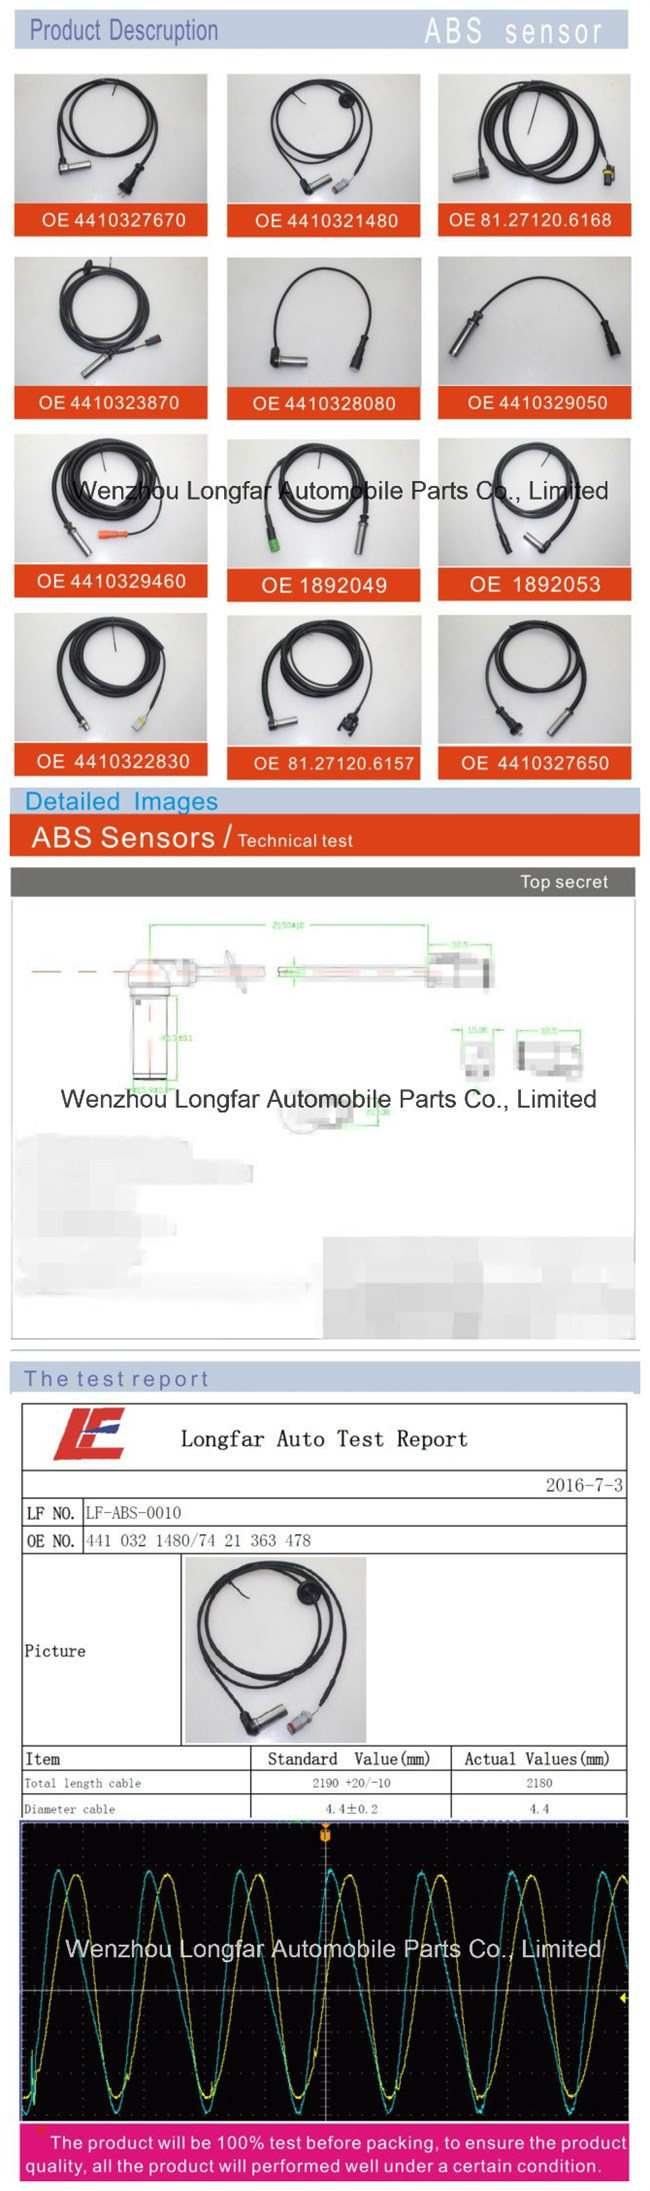 Auto Truck ABS Sensor Anti-Lock Braking System Transducer Indicator Sensor 5010422022, 6.61903, 0486000072000, 85-50520-Sx, 096.359, 75720 for Renault, Dt